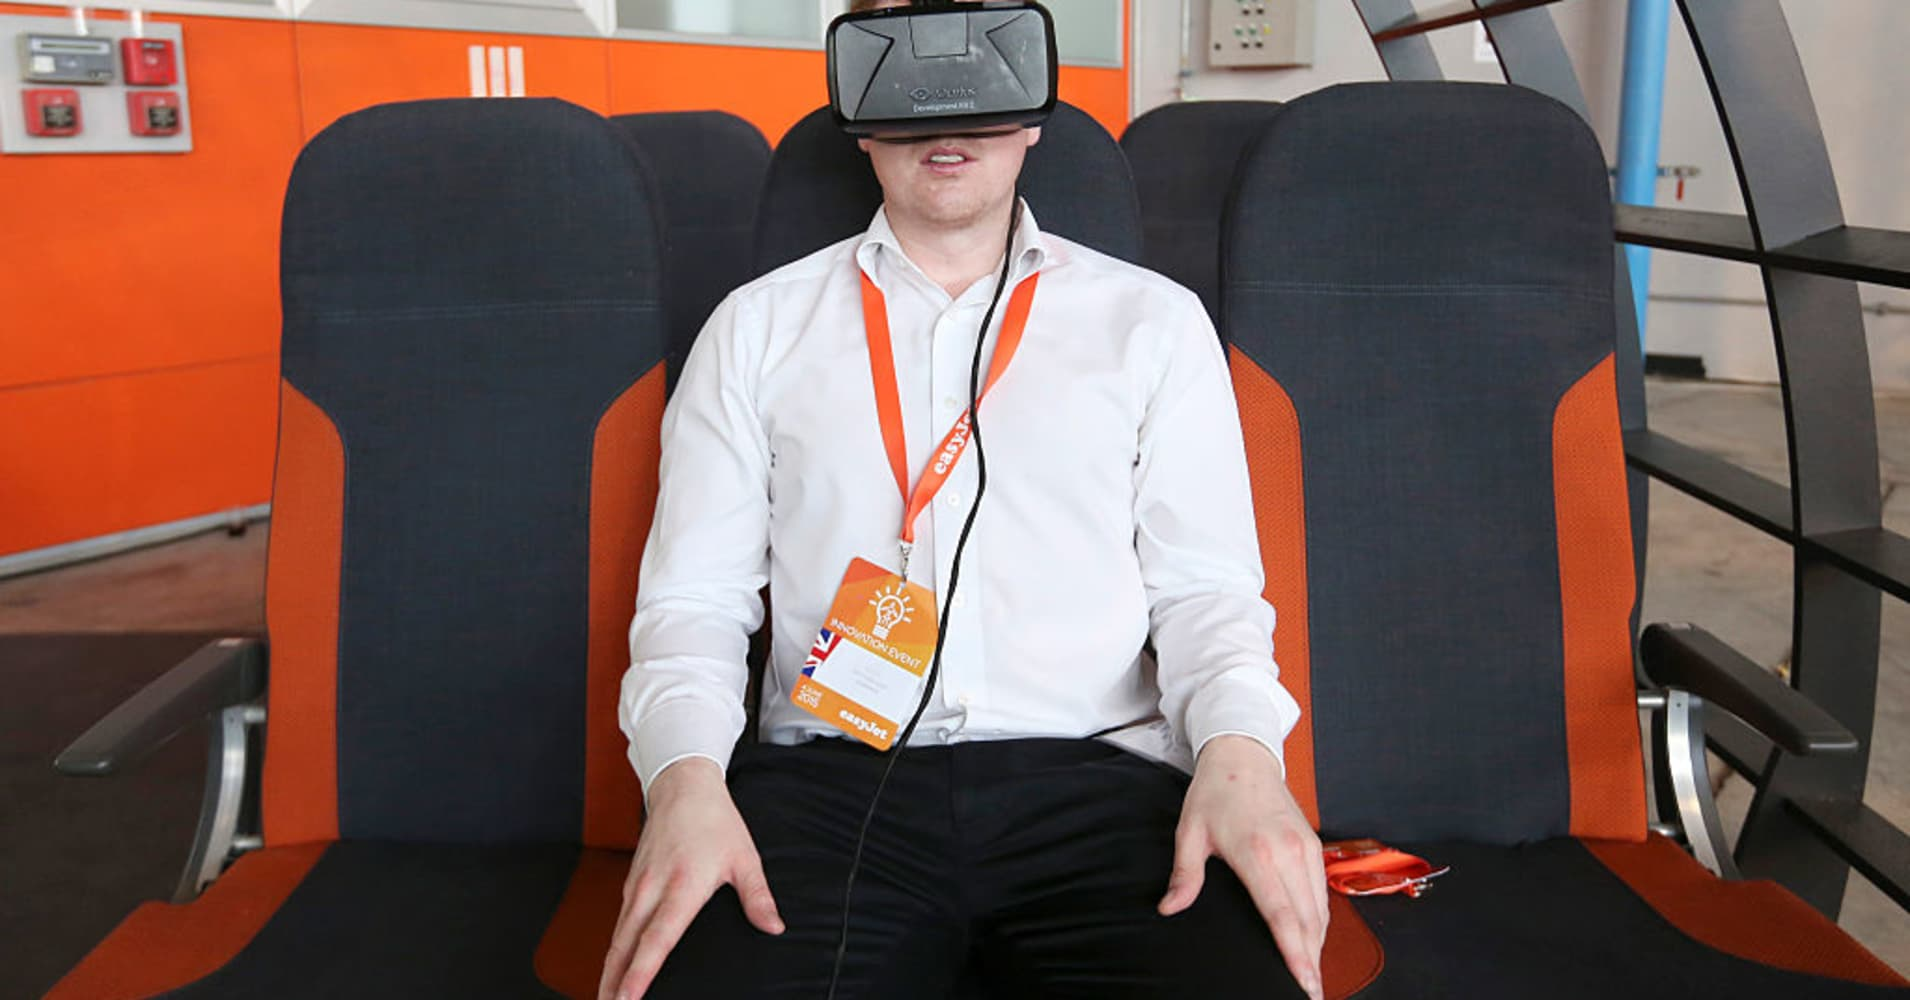 Virtual reality and Netflix: The future of in-flight entertainment is coming